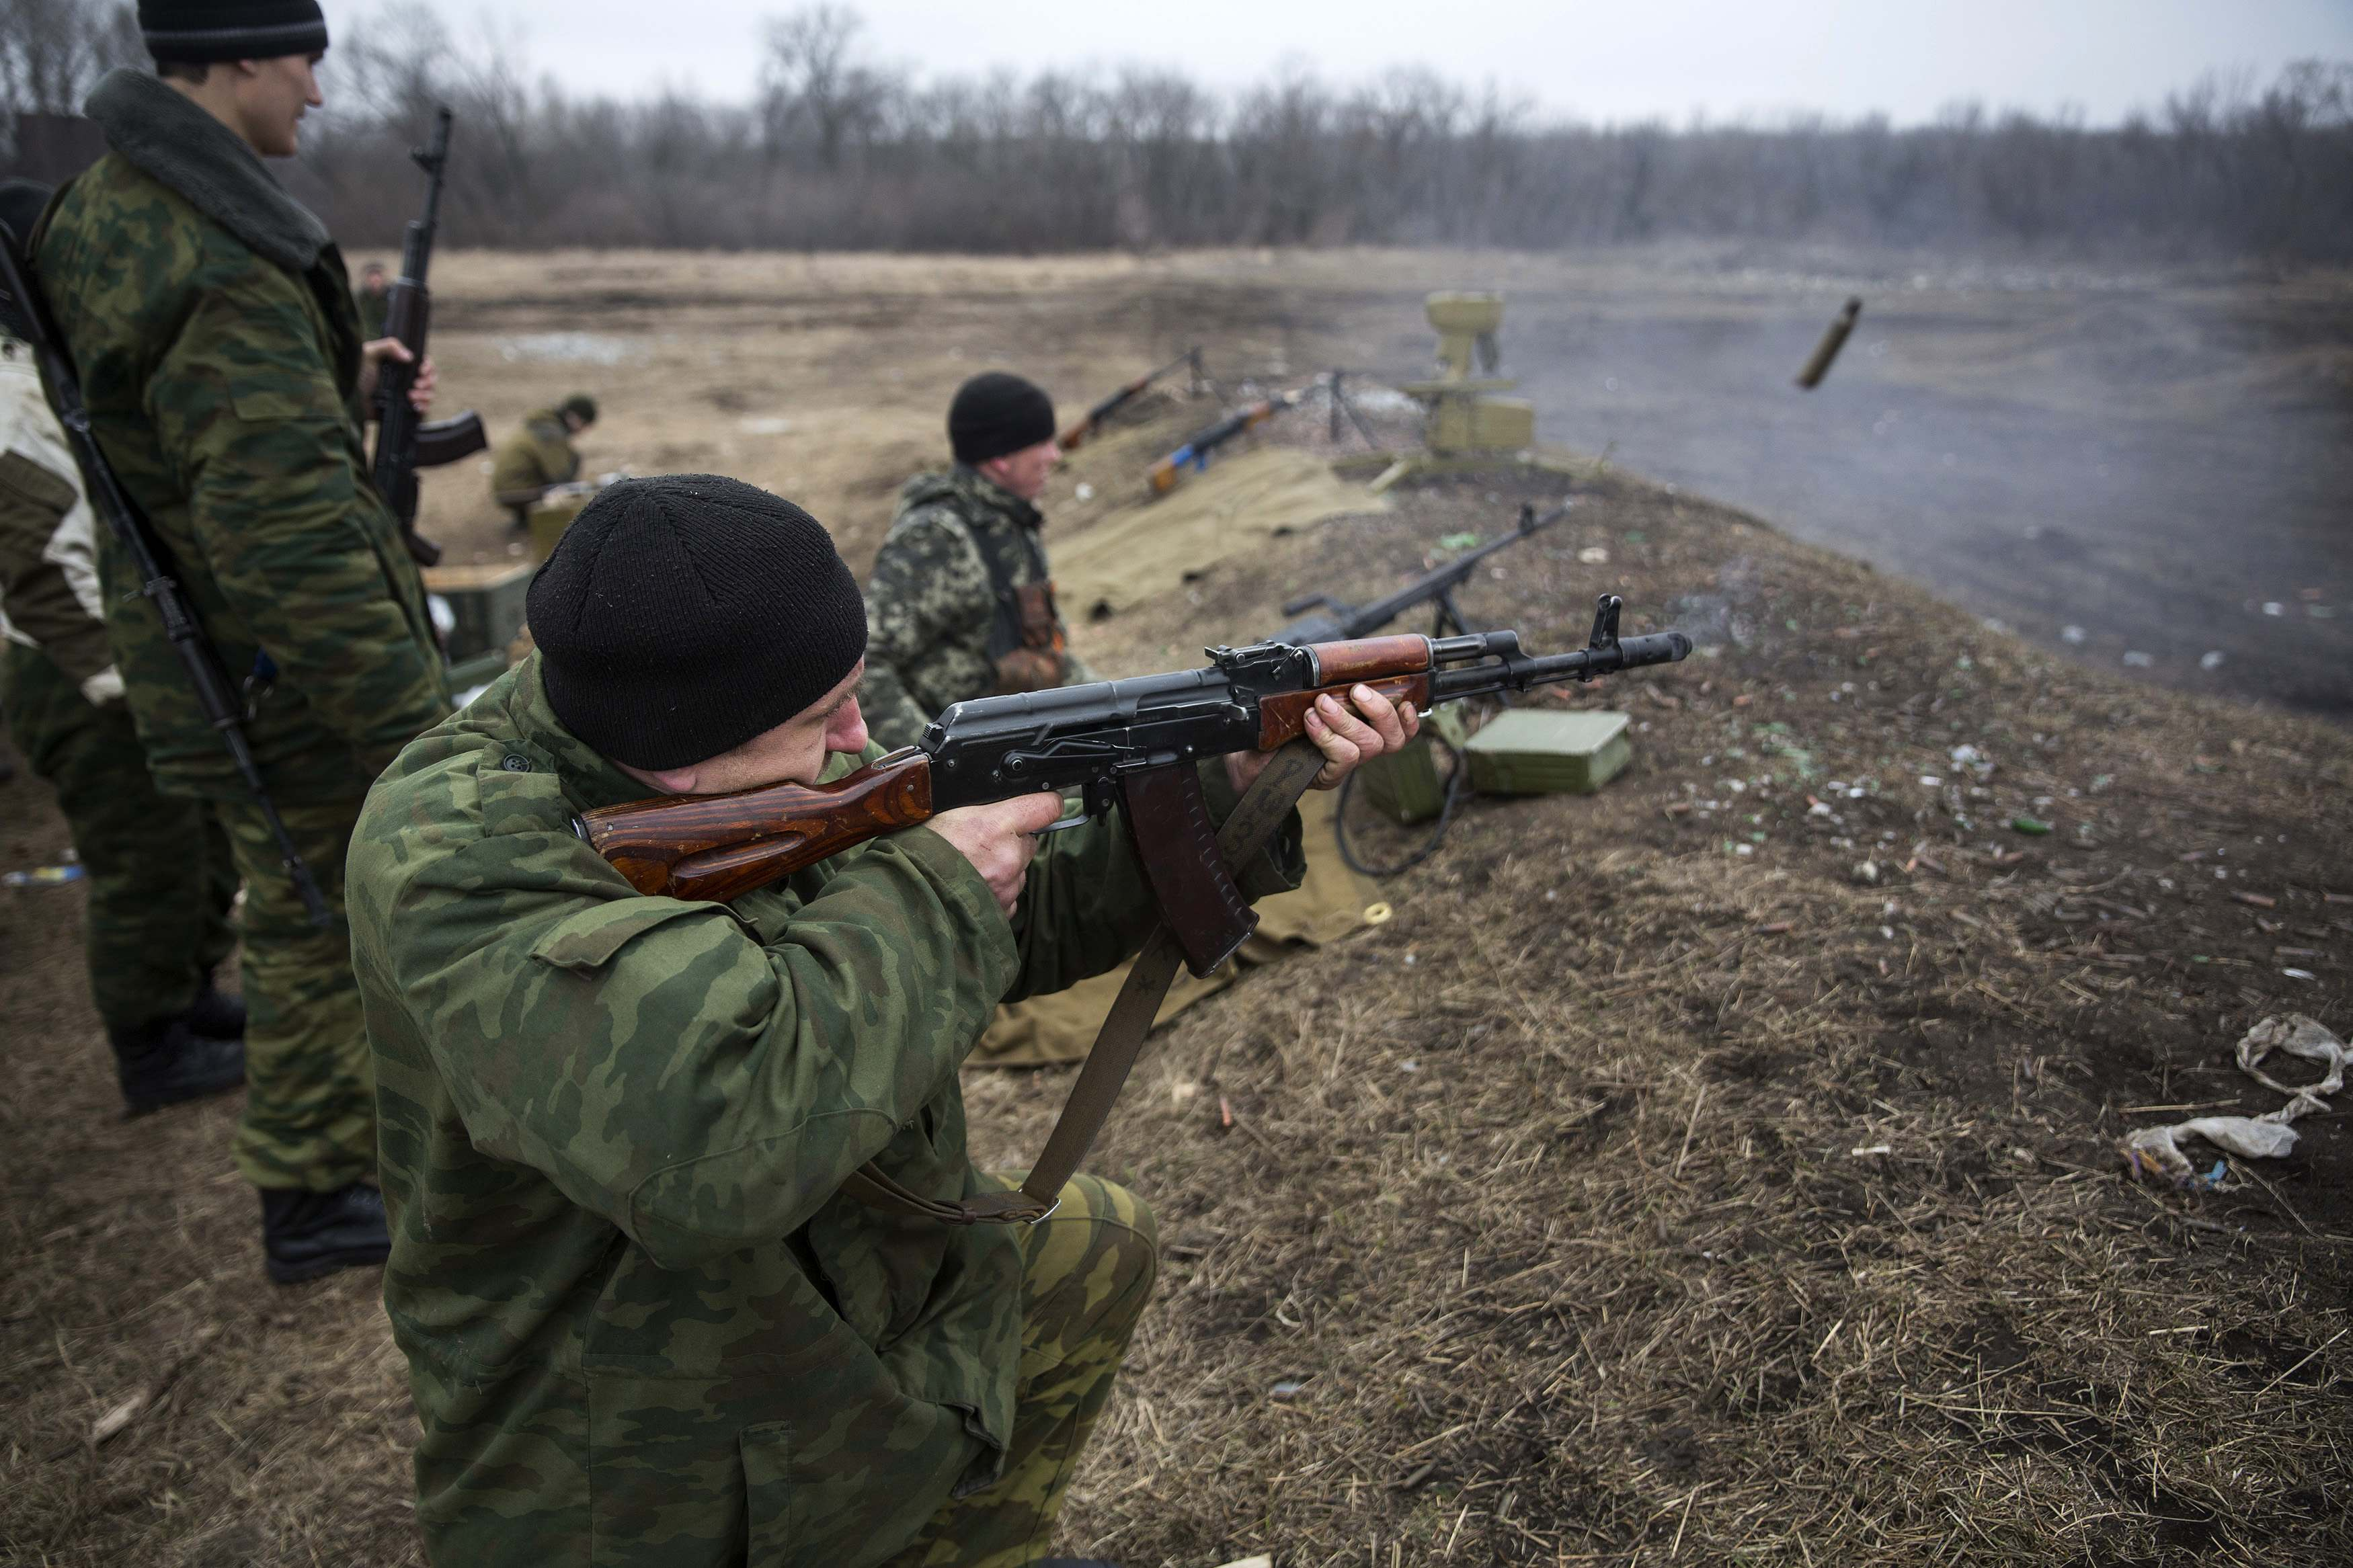 Volunteers of the separatist self-proclaimed Donetsk People's Republican guard fire their weapons during shooting training in Donetsk March 1, 2015.  REUTERS/Baz Ratner (UKRAINE - Tags: POLITICS CIVIL UNREST CONFLICT MILITARY)